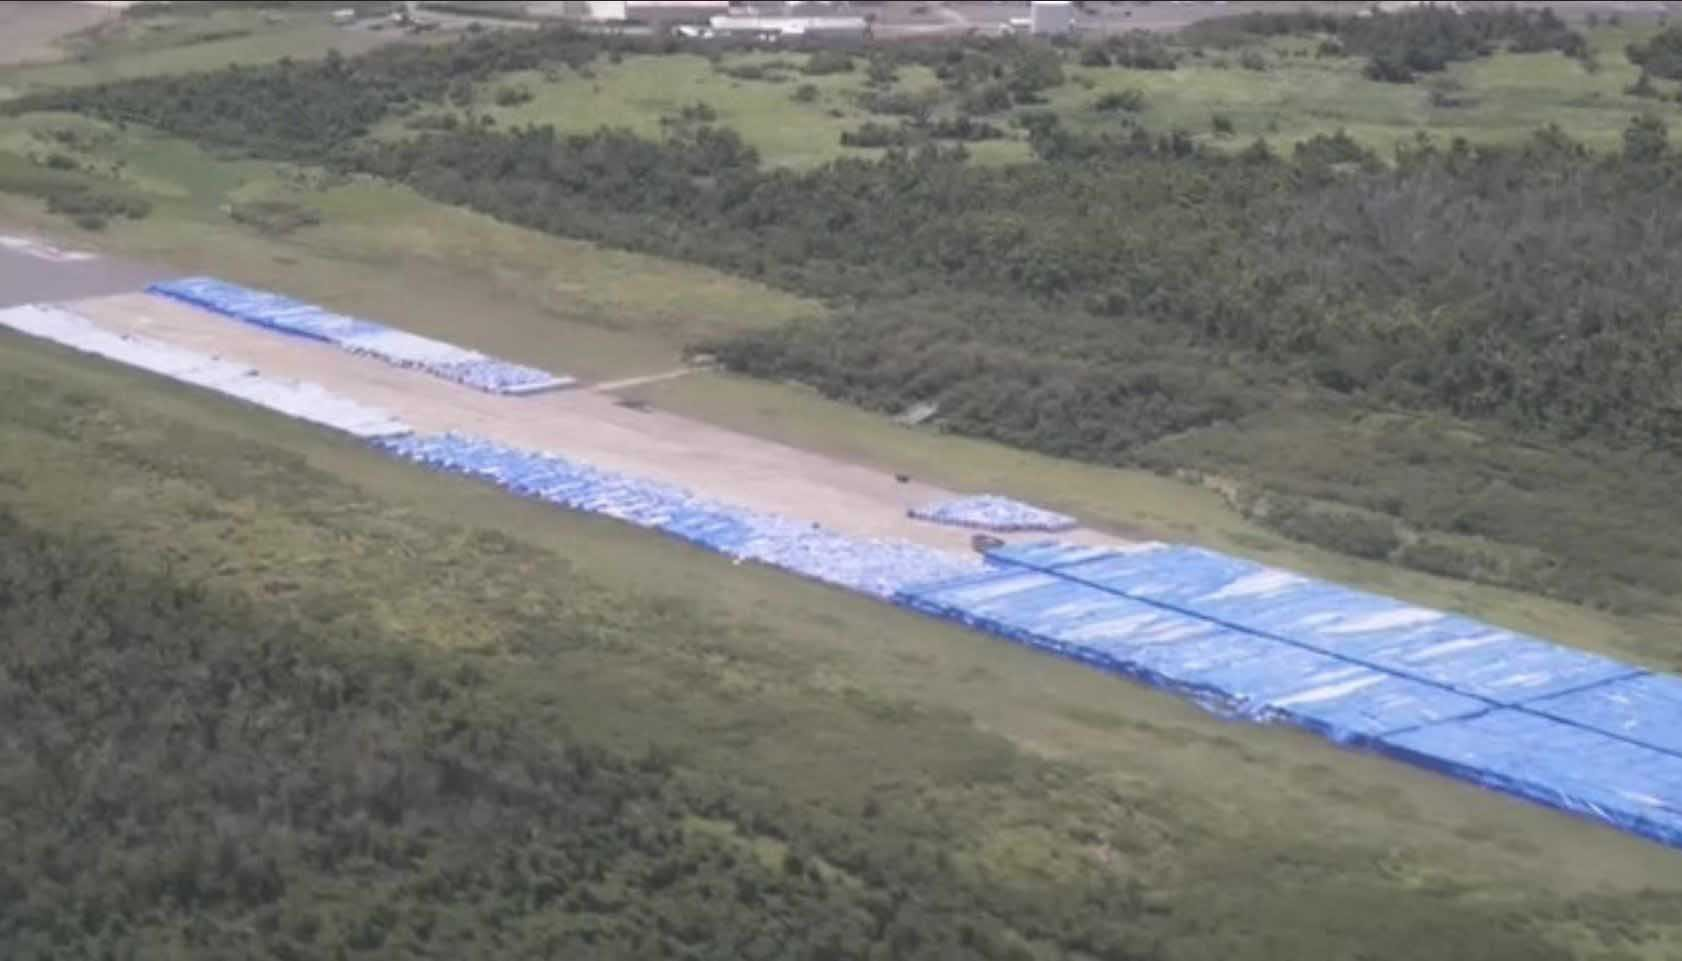 Around 20,000 pallets of bottled water are going to waste on an airport runway in Puerto Rico. (Source: CNN)